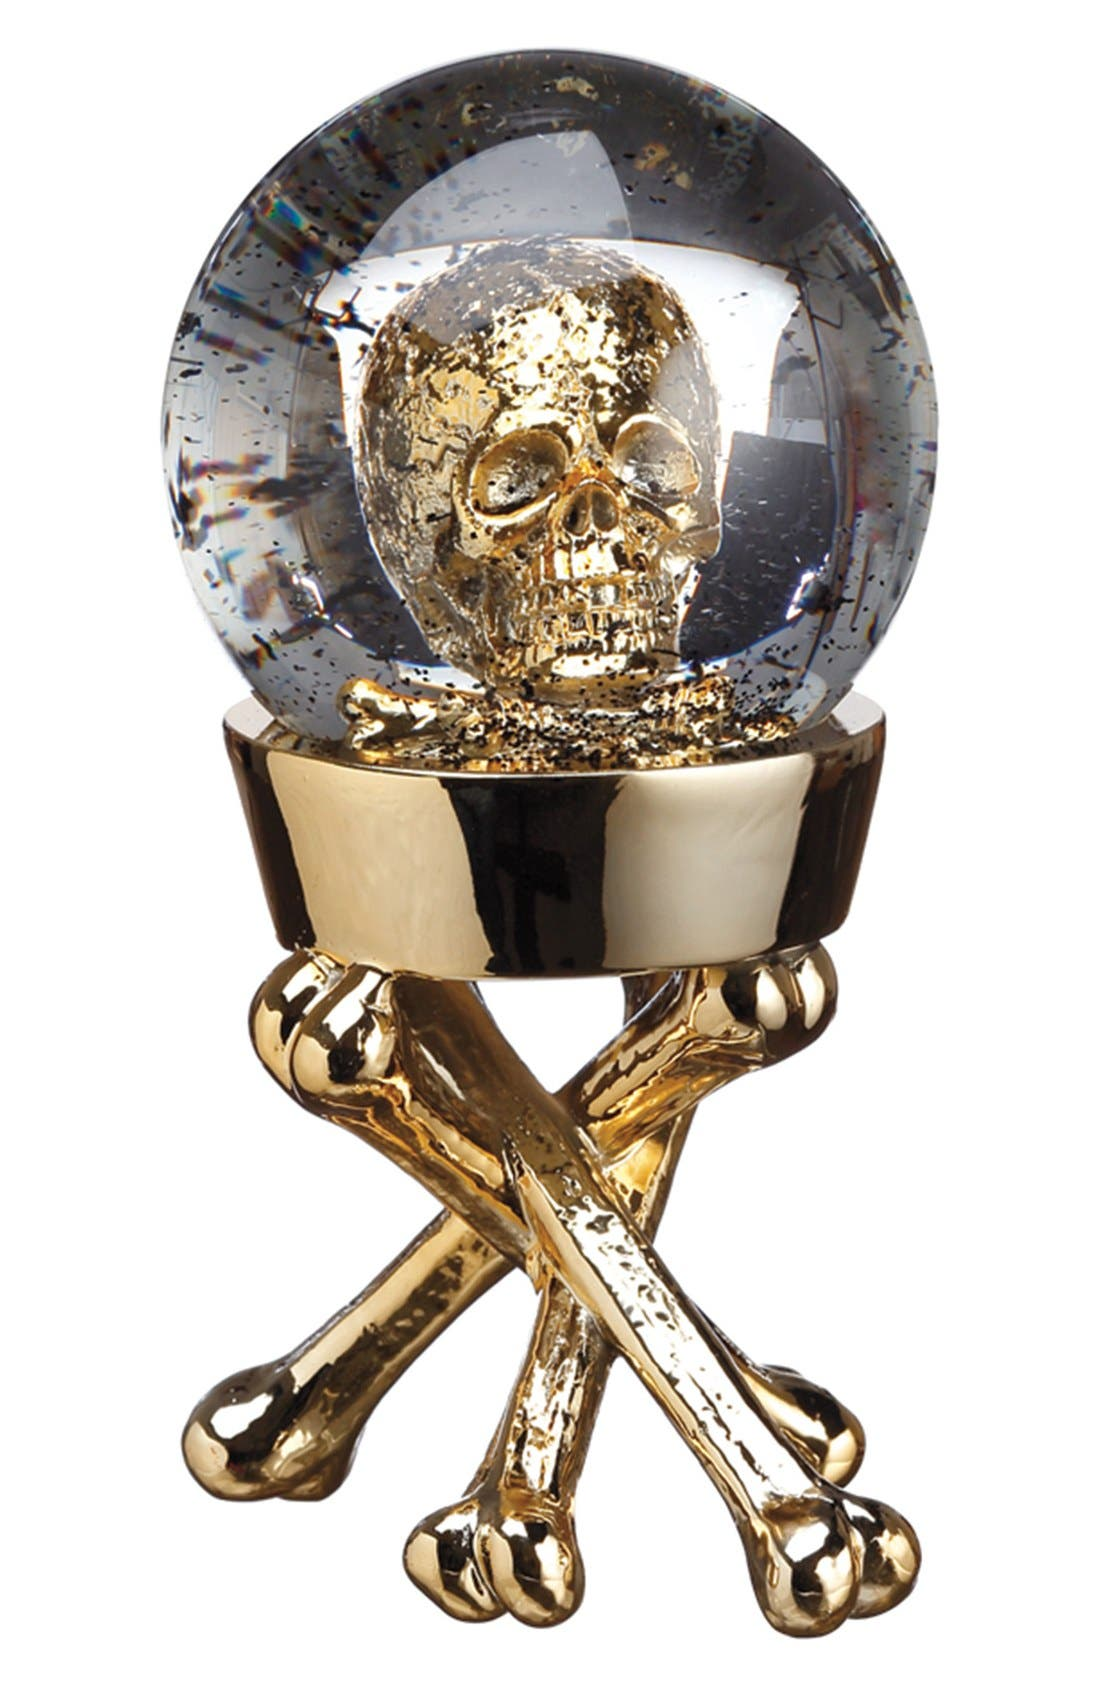 ALLSTATE Skull Globe Decoration